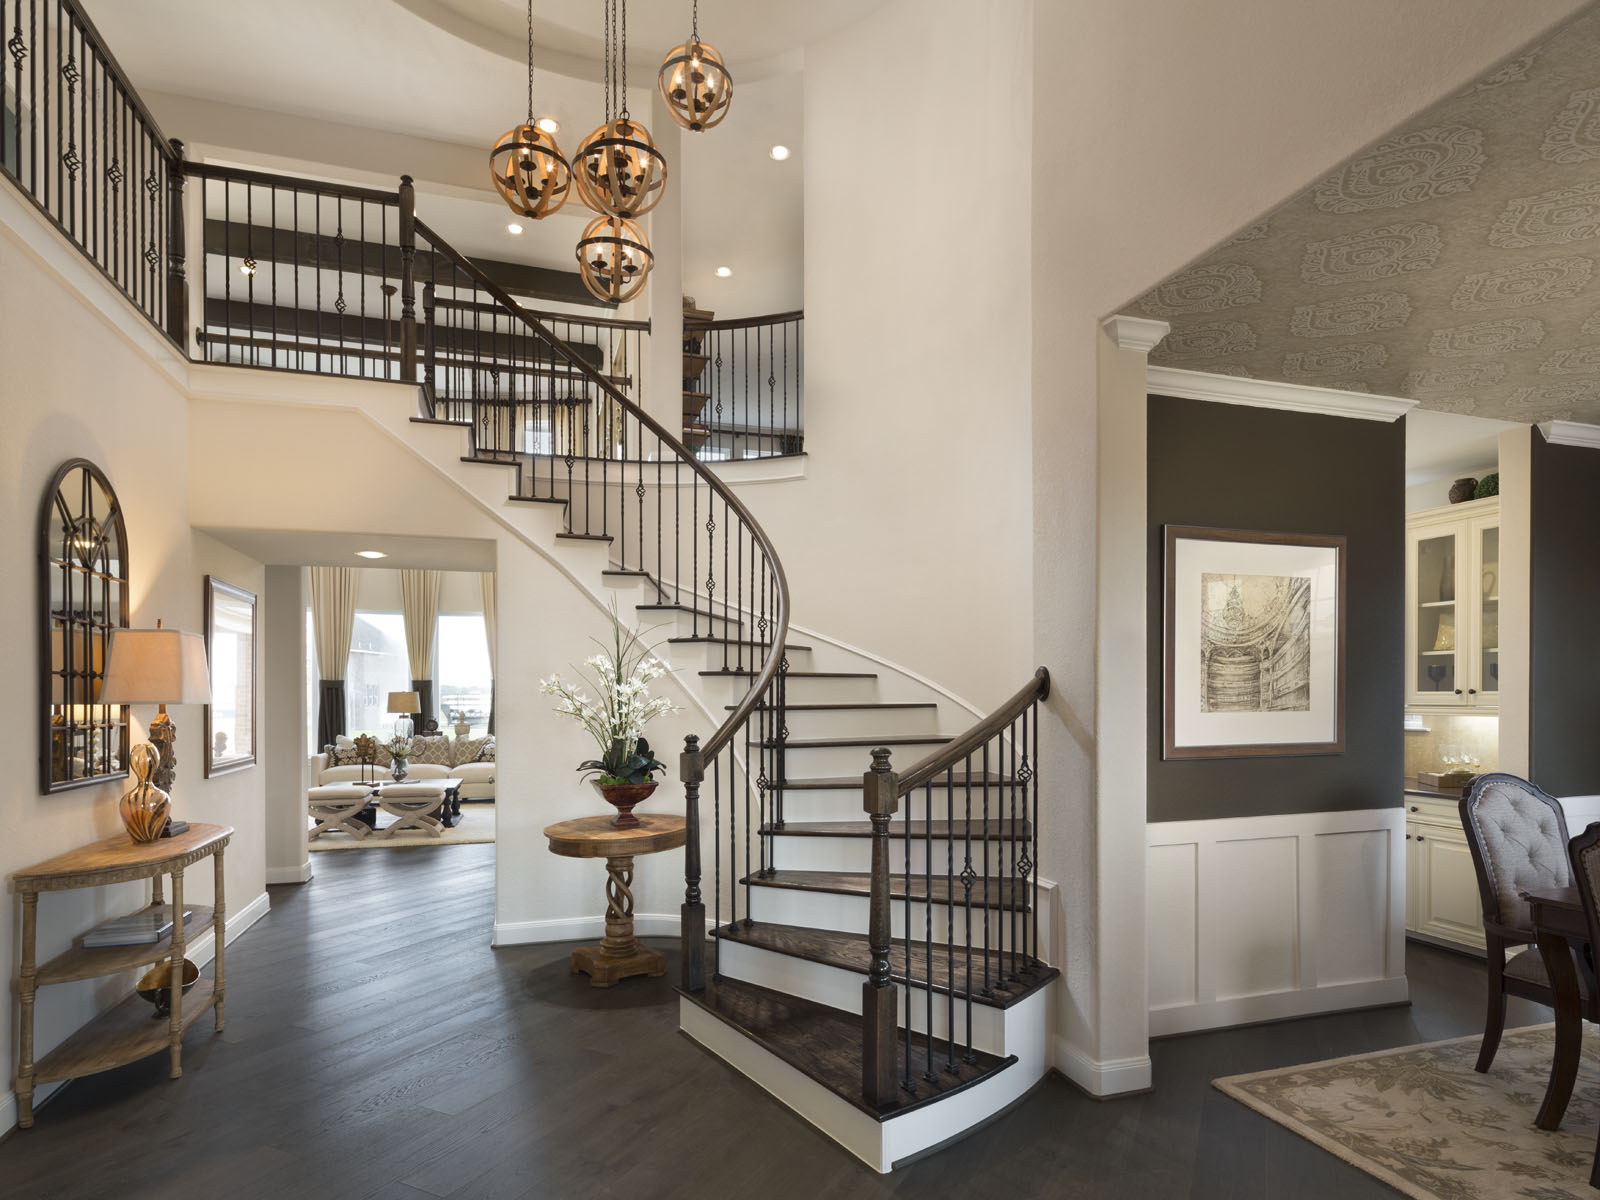 Imperial - Artisan Collection by Meritage Homes | New Homes for sale